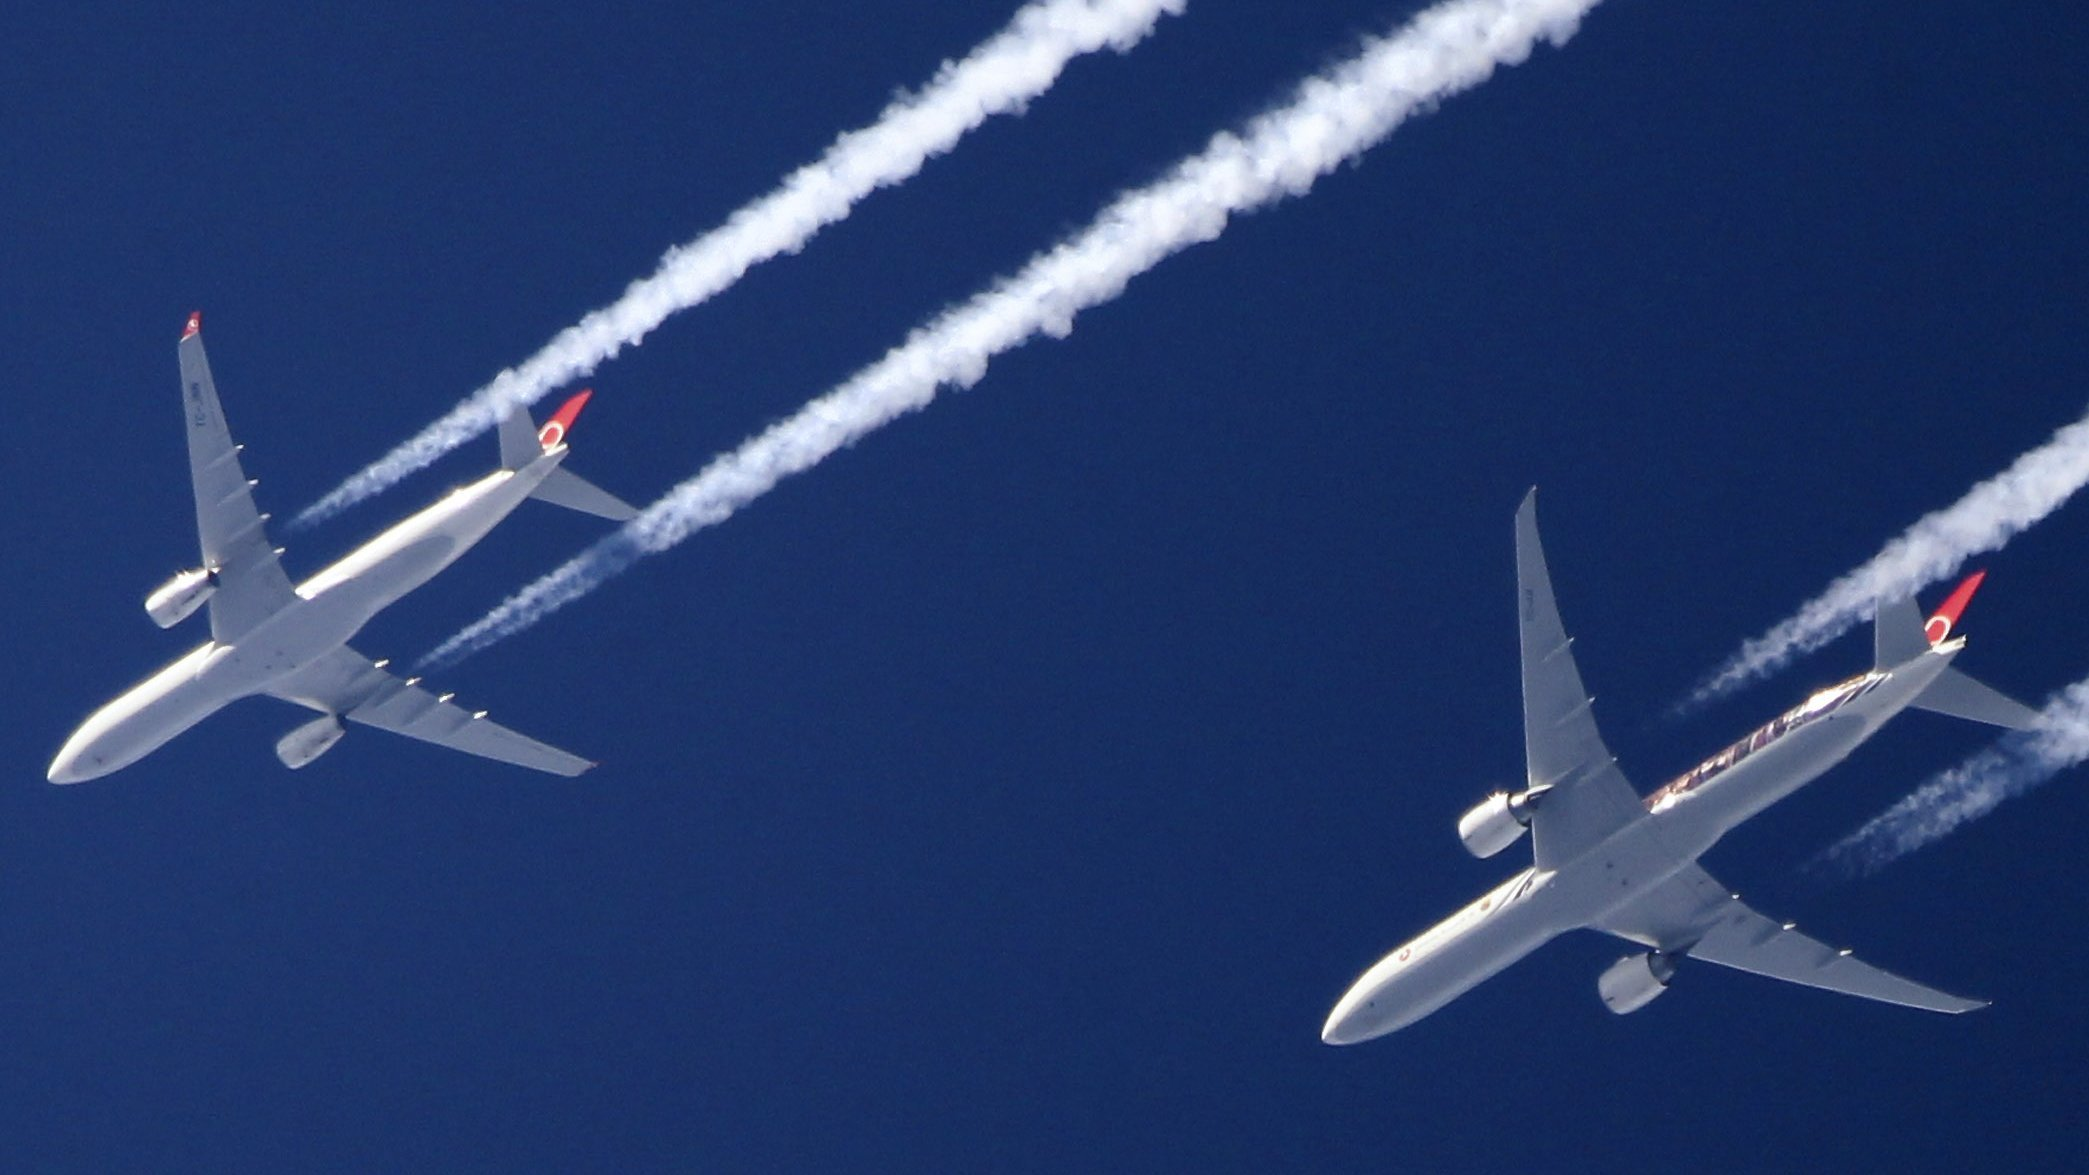 Airplane contrails picture